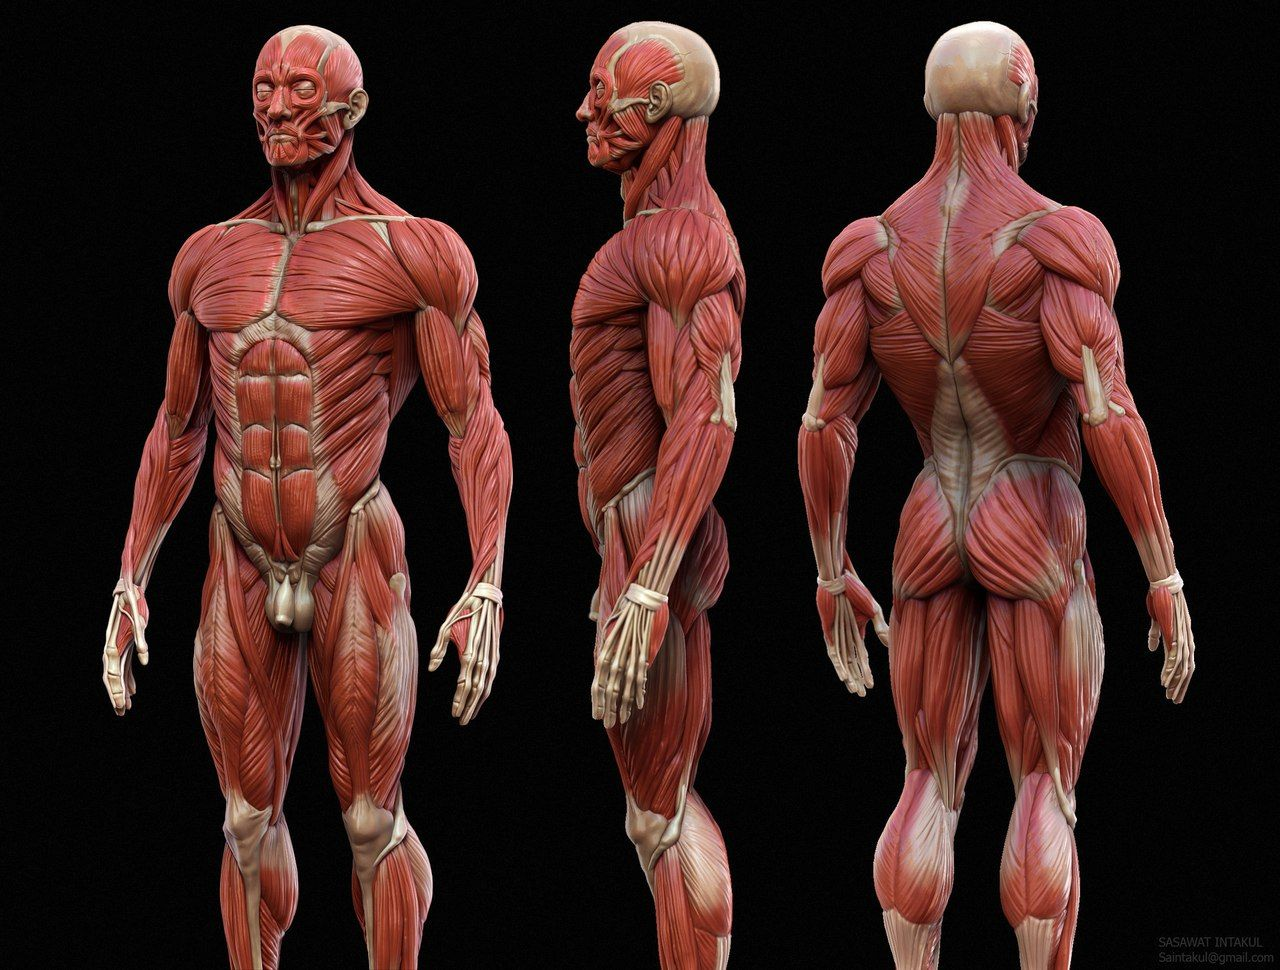 qrGLCPStpio.jpg (1280×970) | reference | Pinterest | Anatomy, Human ...